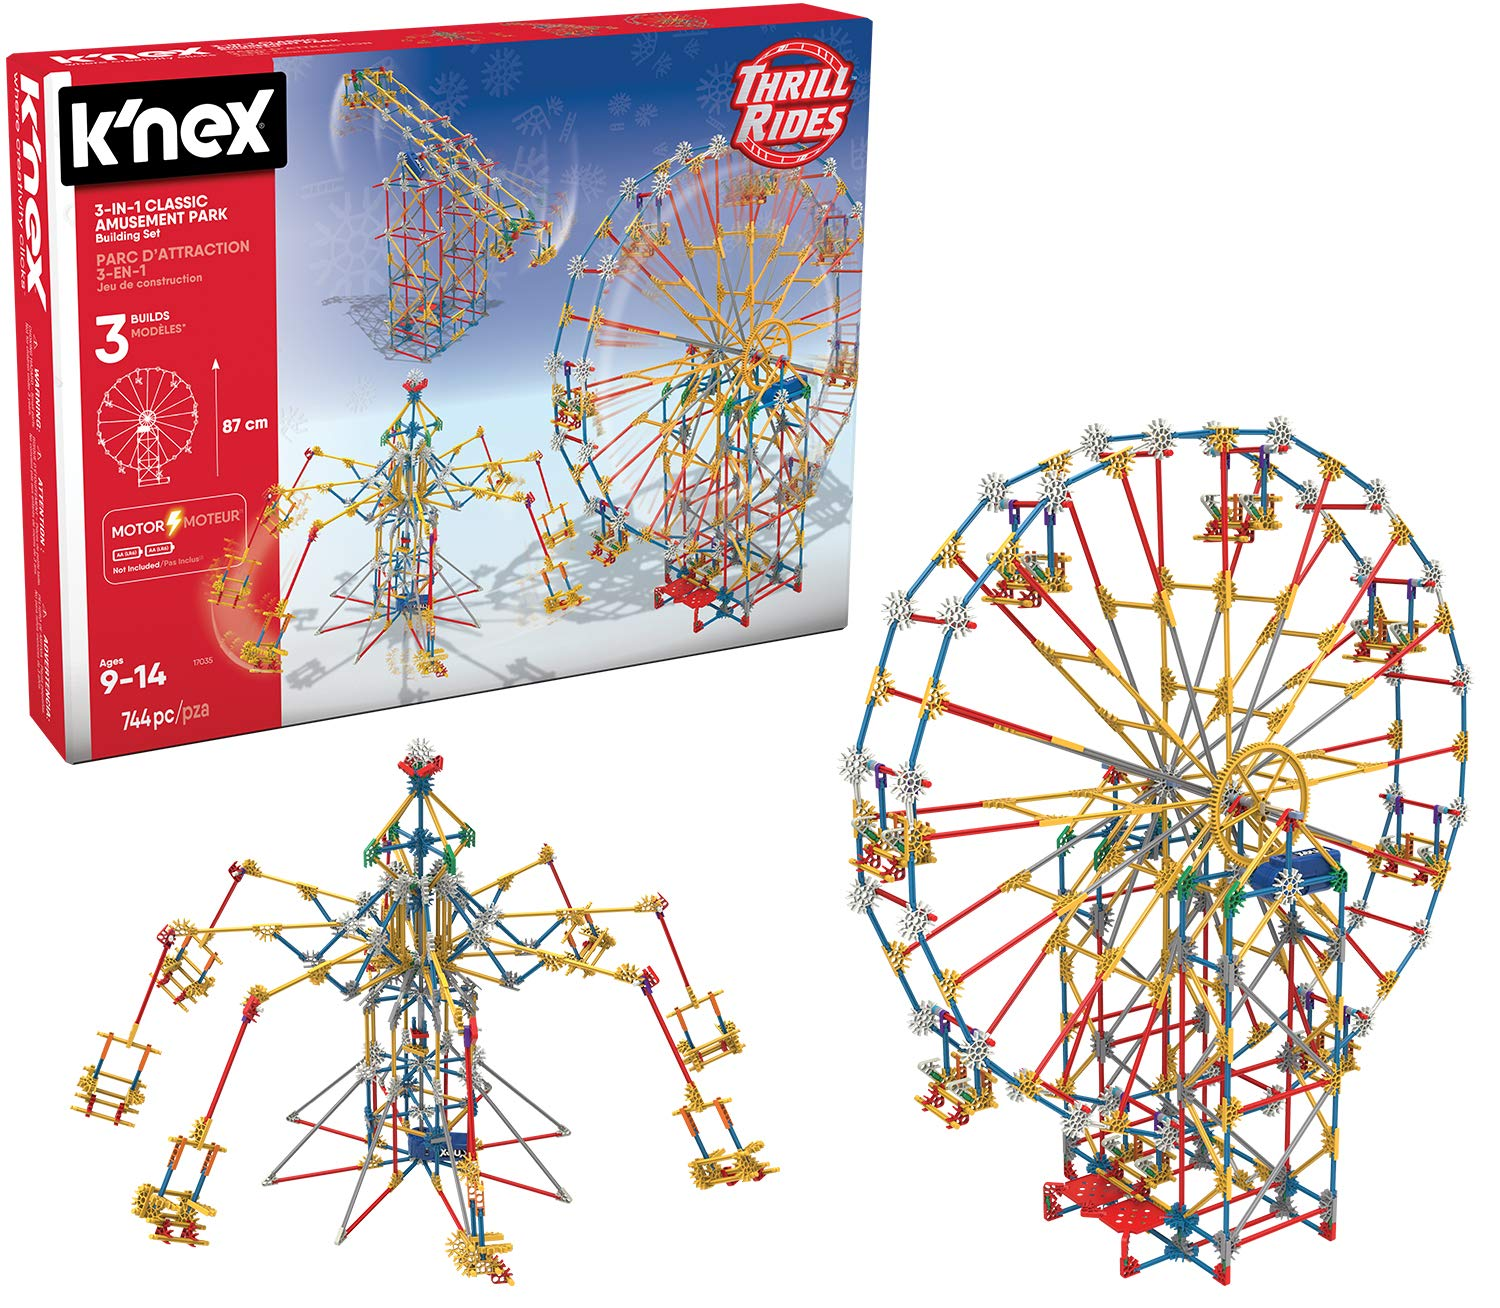 K'NEX Thrill Rides - 3-in-1 Classic Amusement Park Building Set